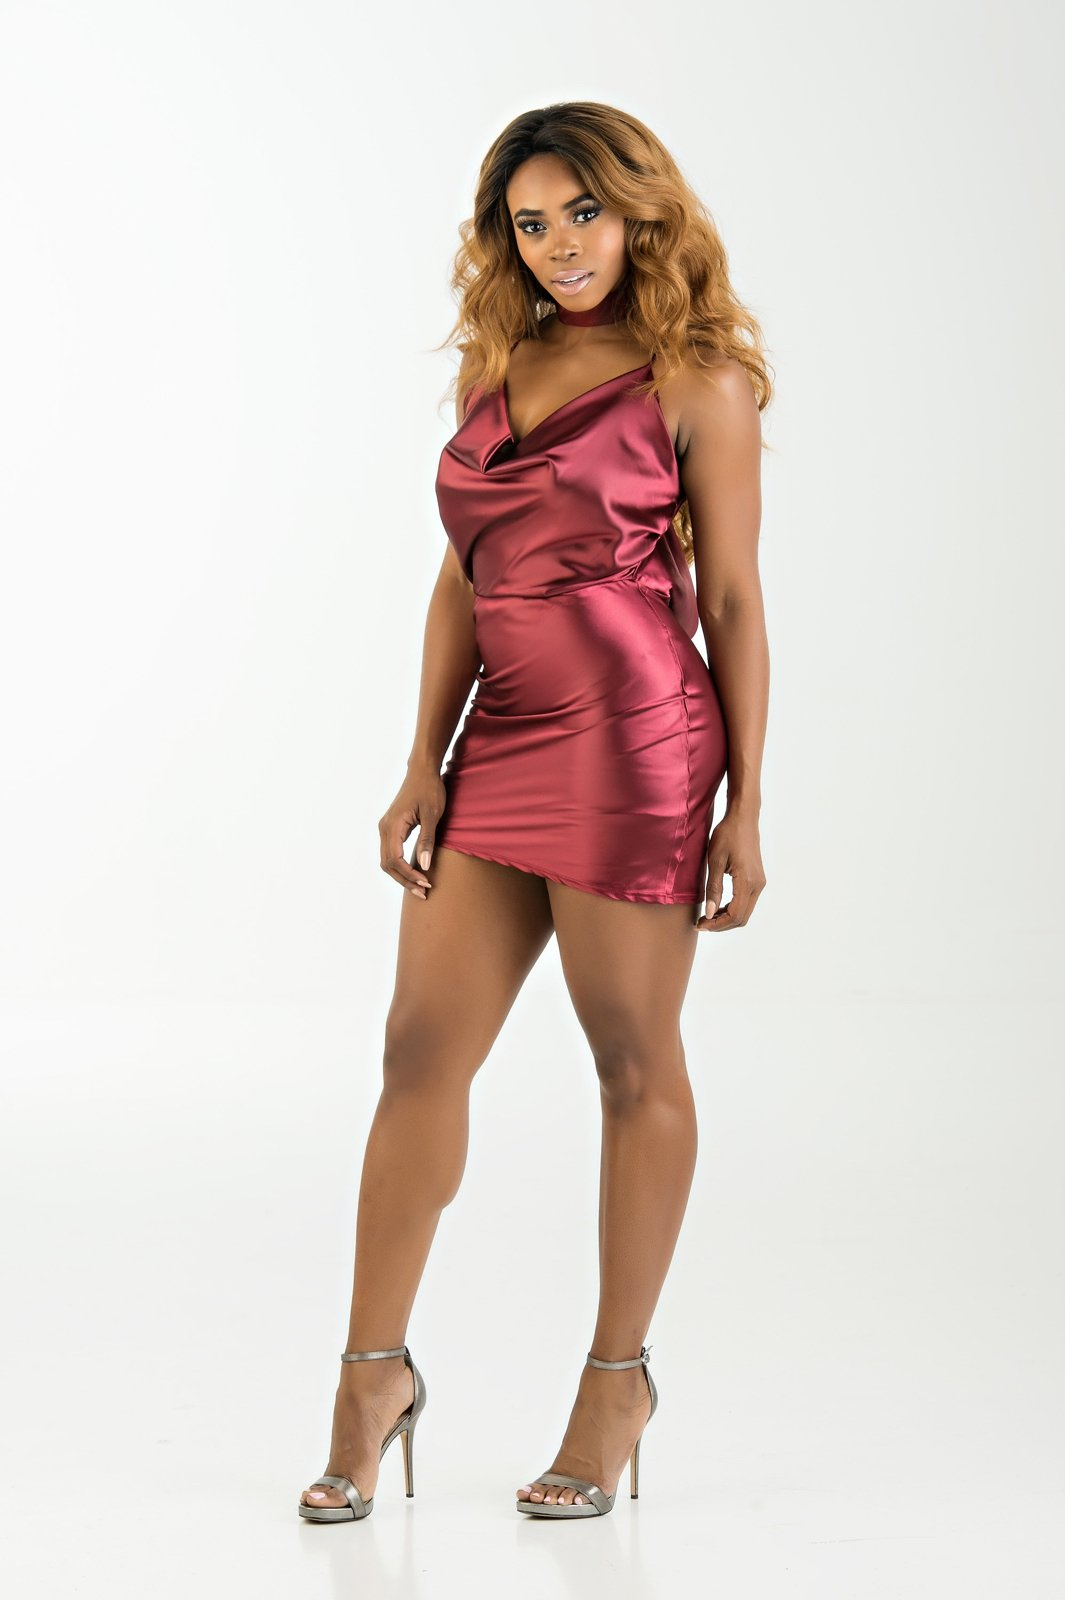 Tracy Satin Dress